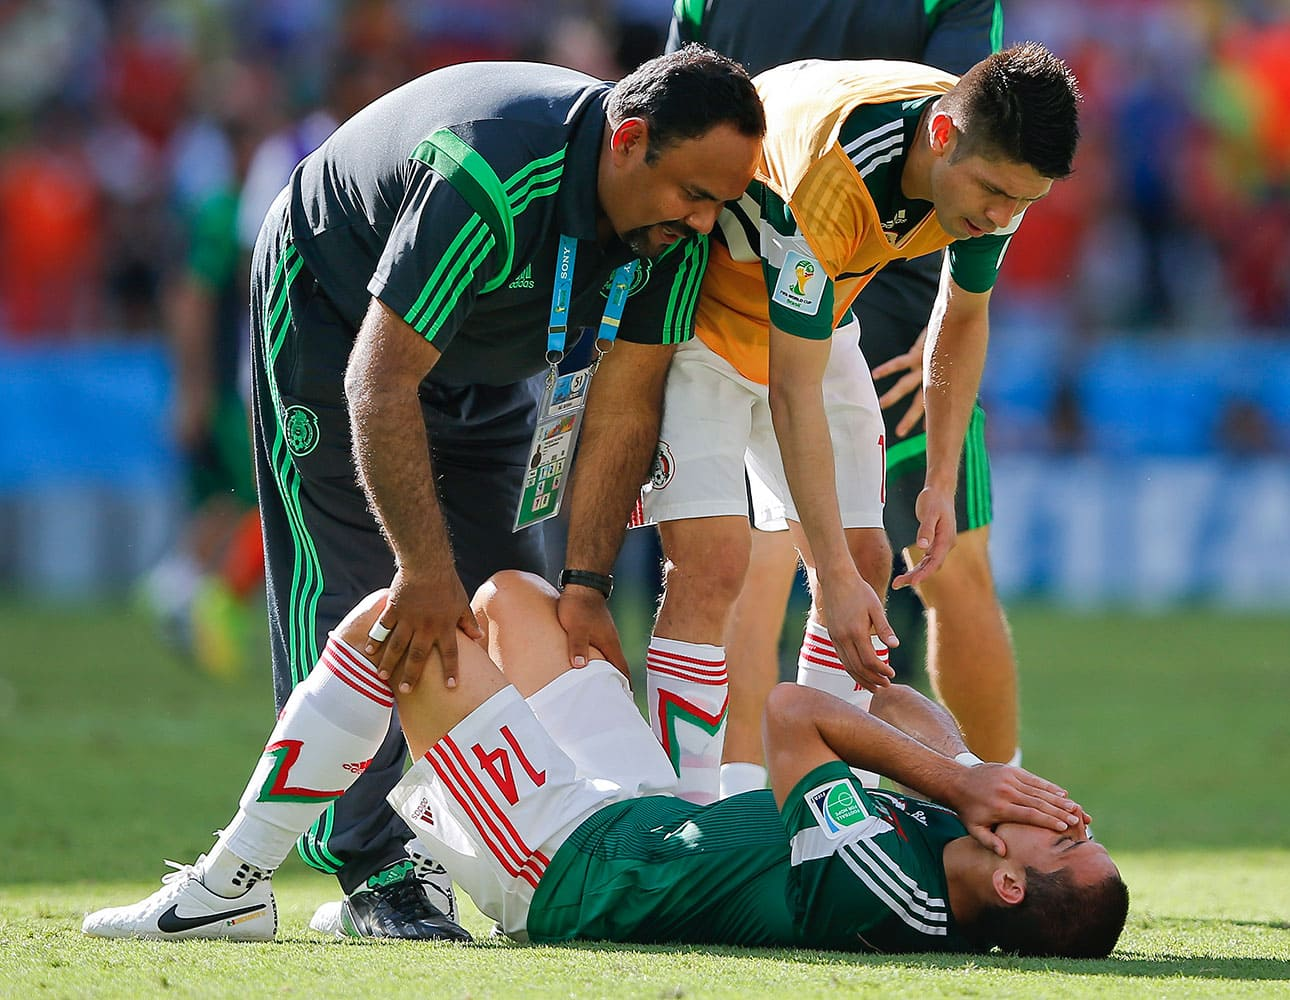 Teammates try to console Mexico's Javier Hernandez after the Netherlands defeated Mexico 2-1 to advance to the quarterfinals during the World Cup round of 16 soccer match between the Netherlands and Mexico at the Arena Castelao in Fortaleza, Brazil.